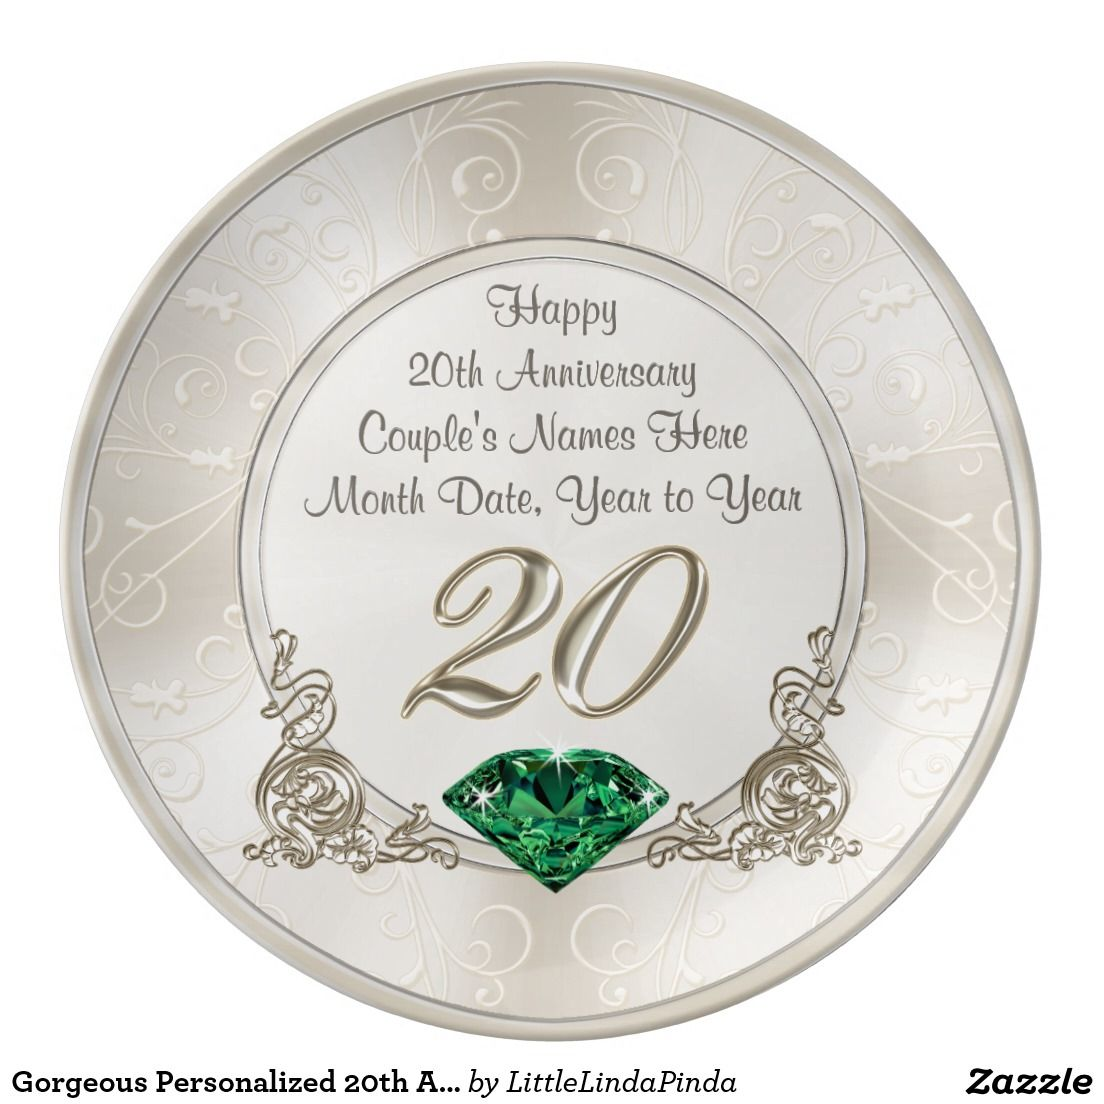 Gorgeous Personalized 20th Anniversary Gifts Anniversary ...